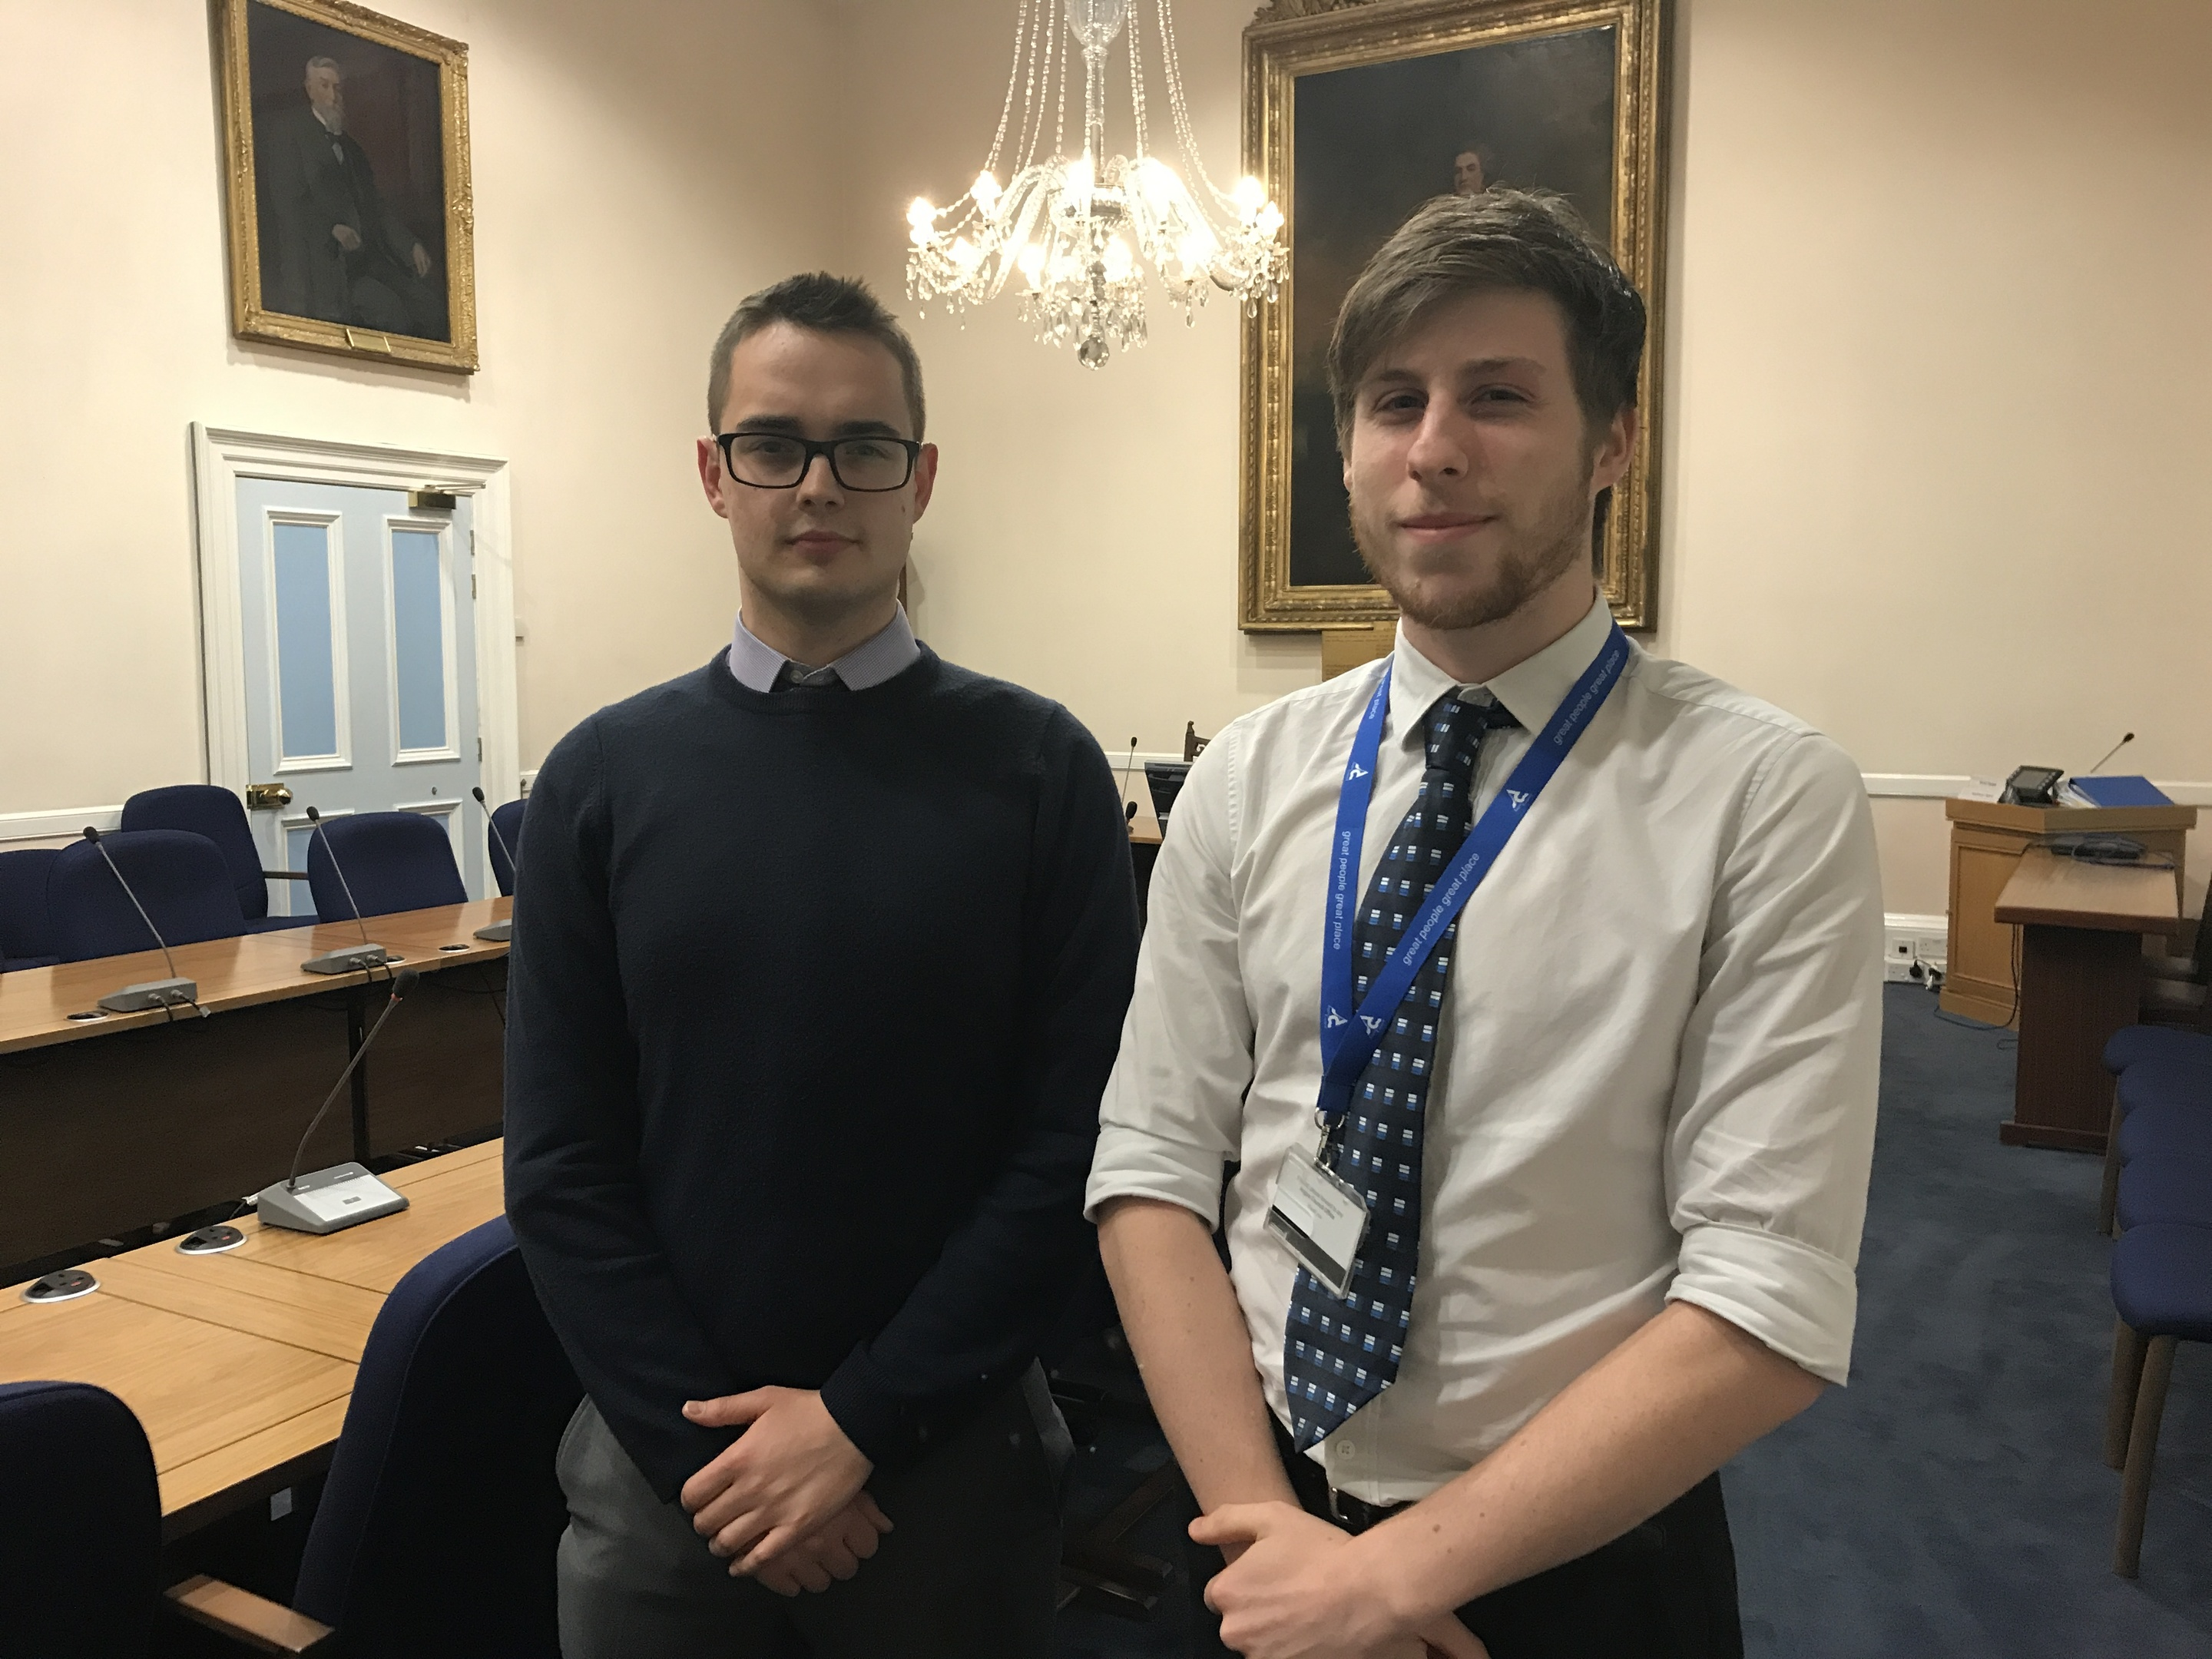 Councillor Braden Davy and Councillor Ben Lawrie